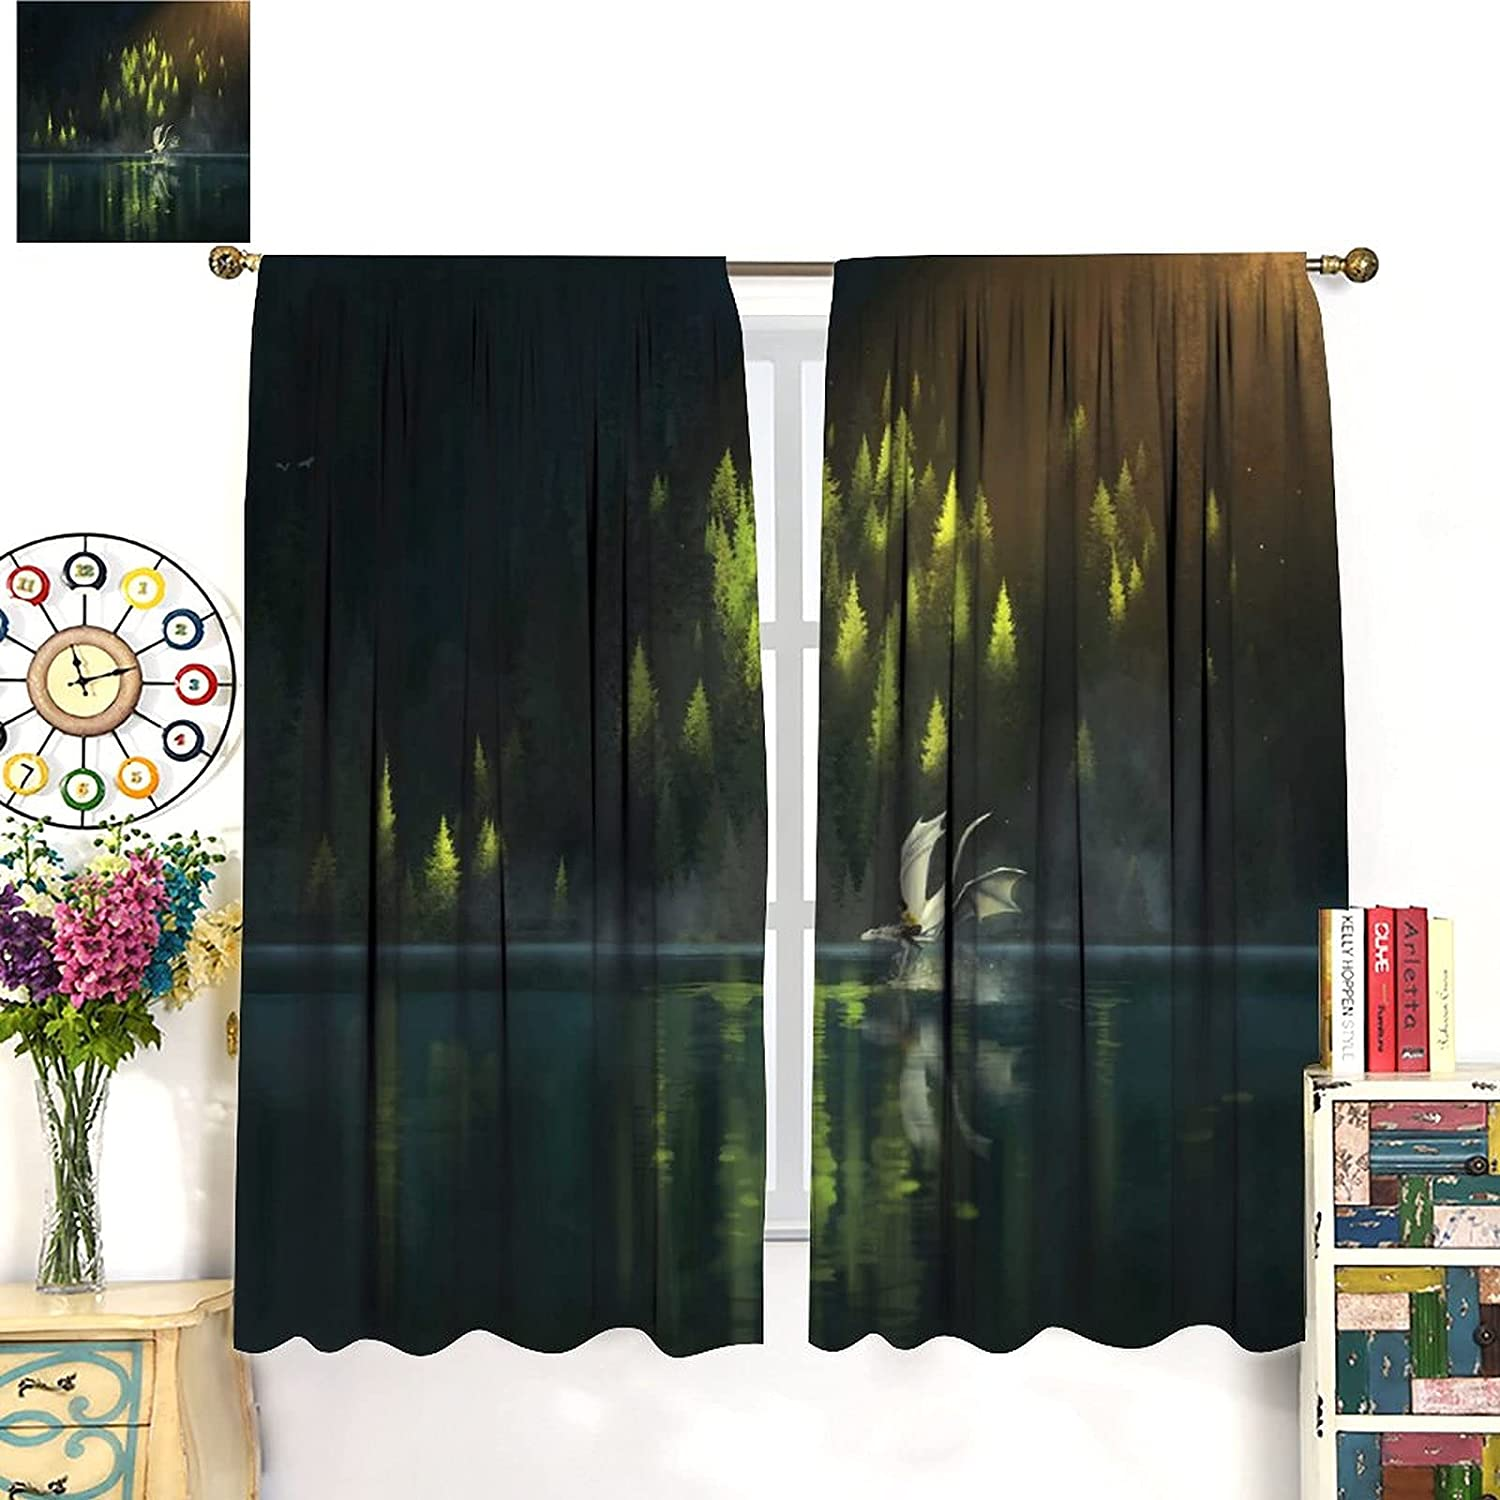 Dragon Blackout Curtains Fantasy Super sale period limited Art Genuine Free Shipping and His Sragon Friends Flyi